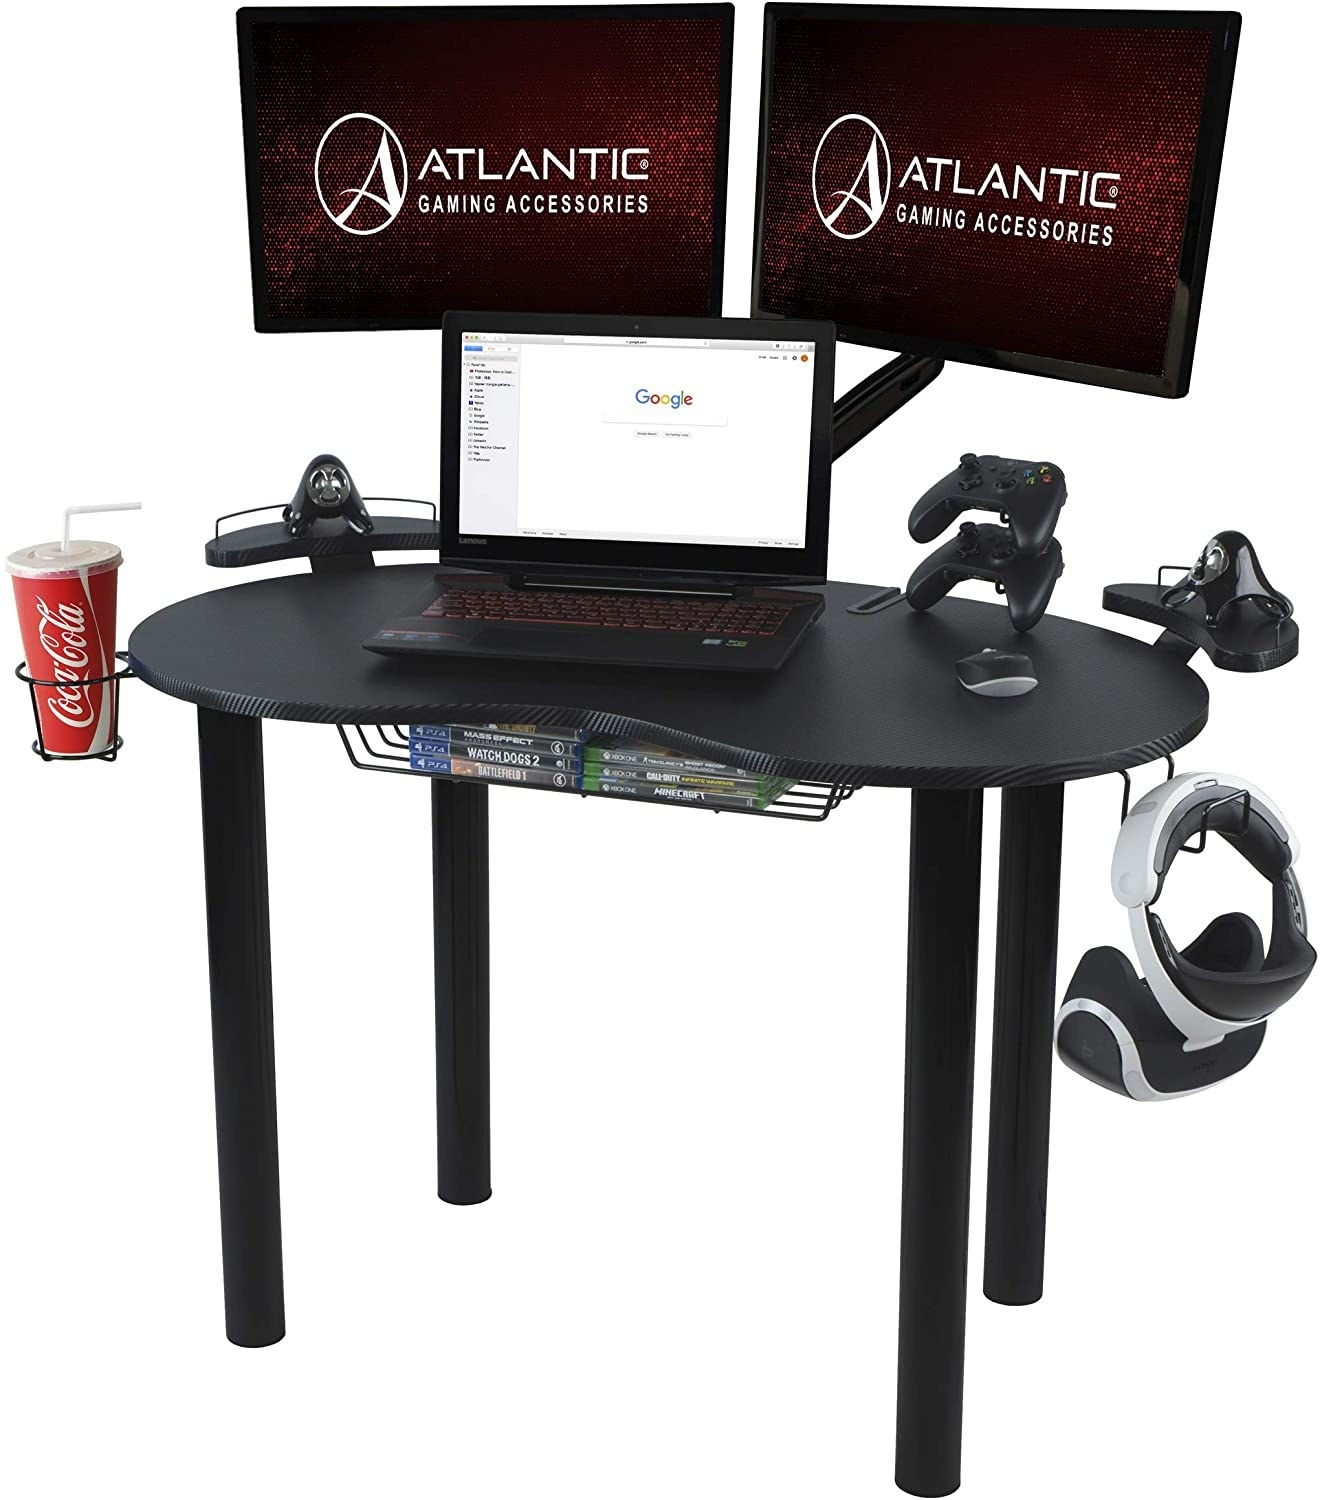 black gaming desk with accessories hanging from it